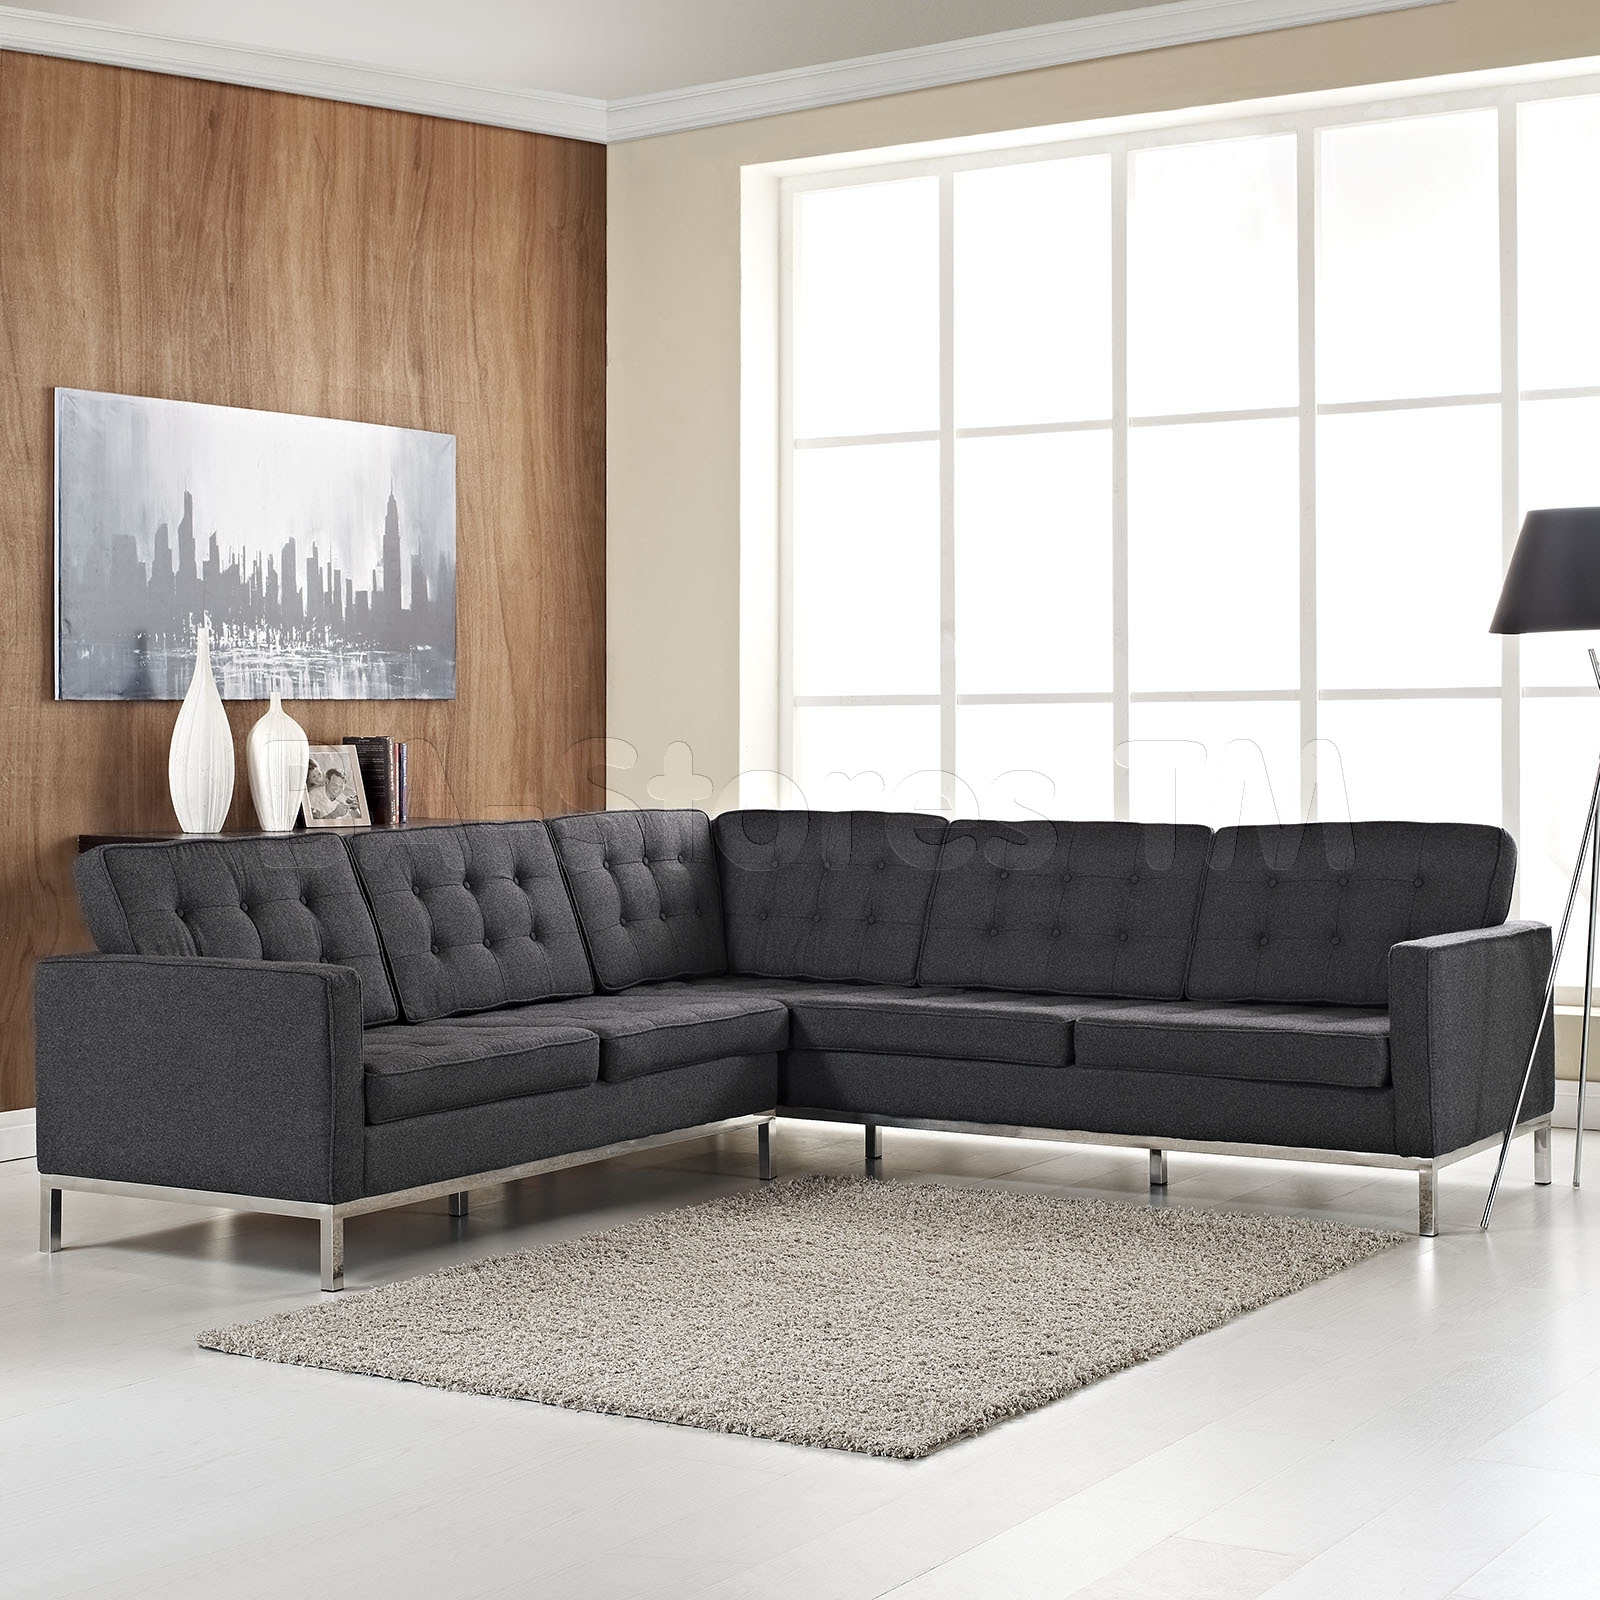 Beautiful L Shaped Sectional Sofas Contemporary Shape Sofa ~ Idolza With Regard To Sleek Sectional Sofas (View 7 of 10)